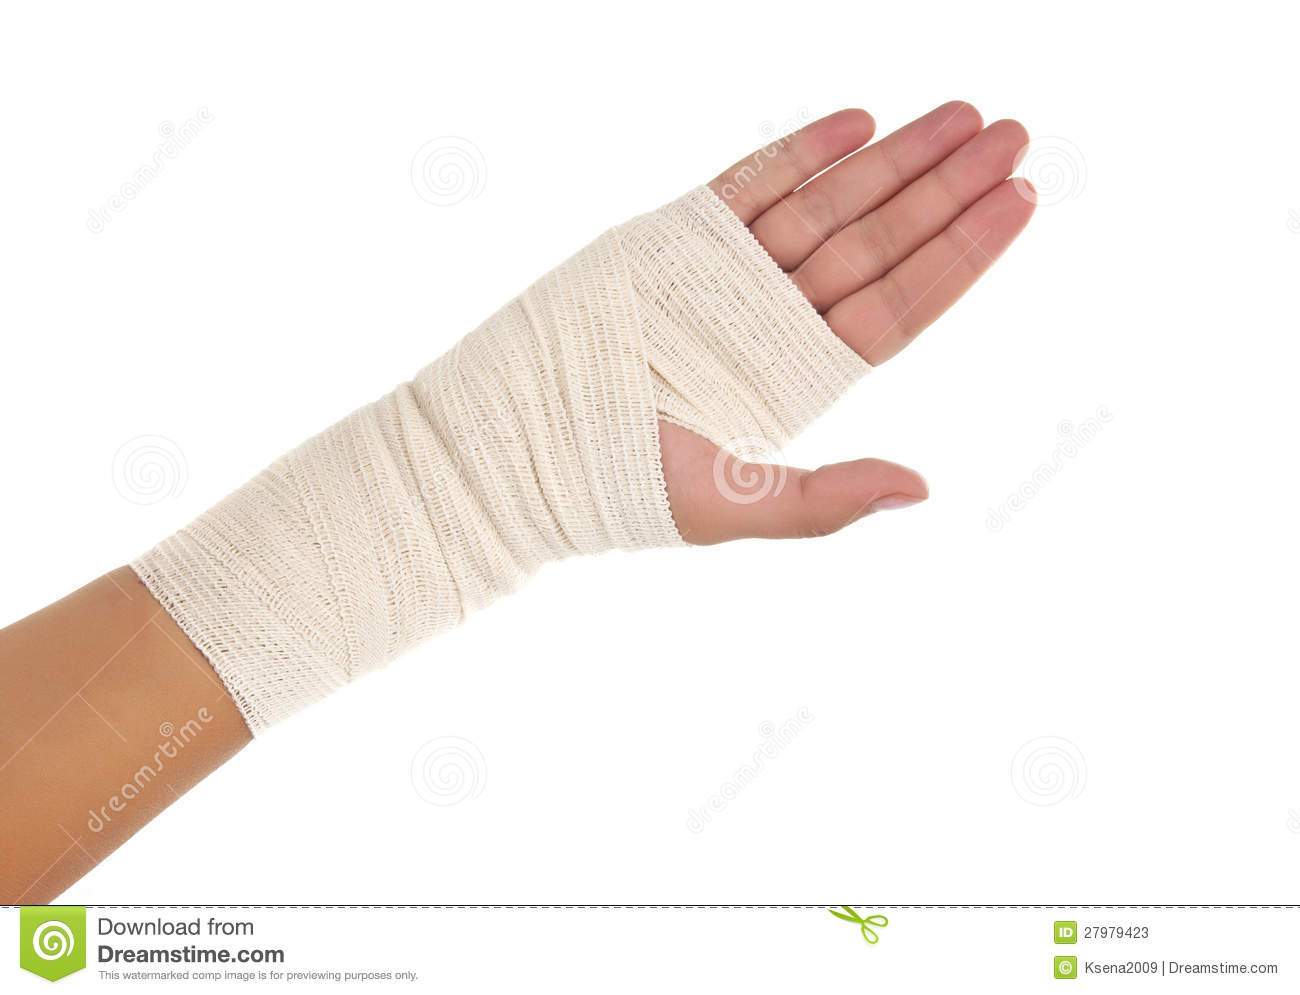 Bandaged Hand Clipart - Clipart Kid